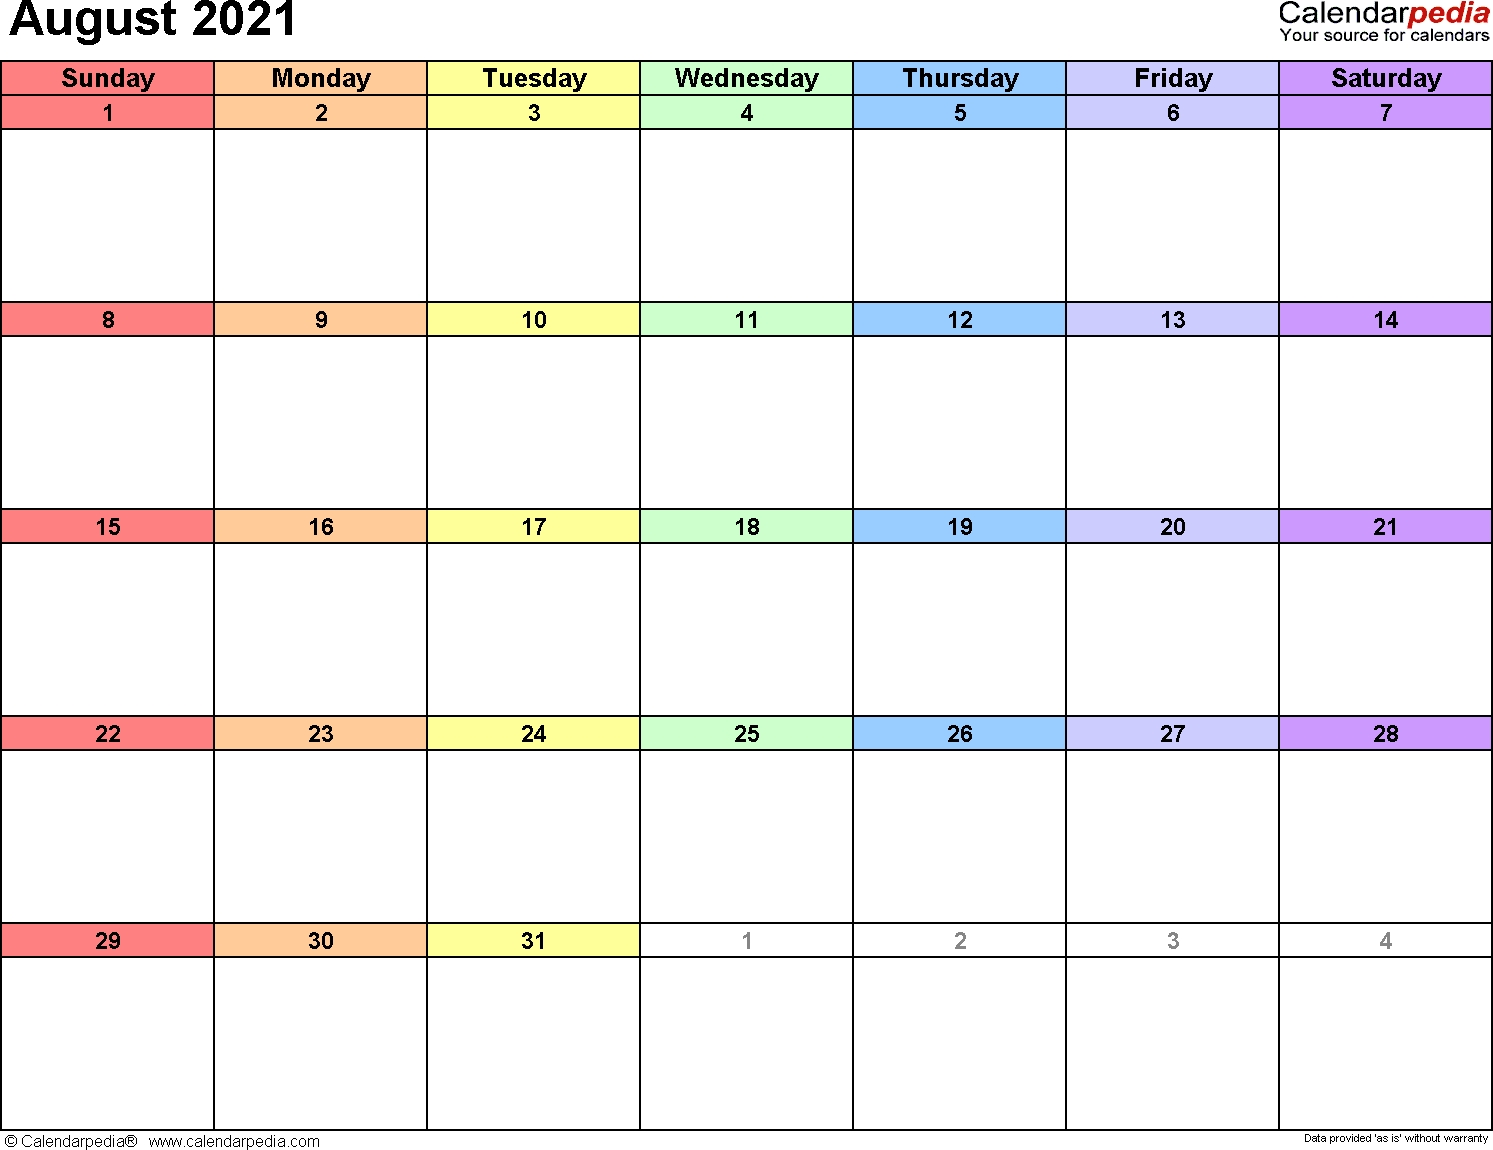 August 2021 Calendars For Word, Excel & Pdf